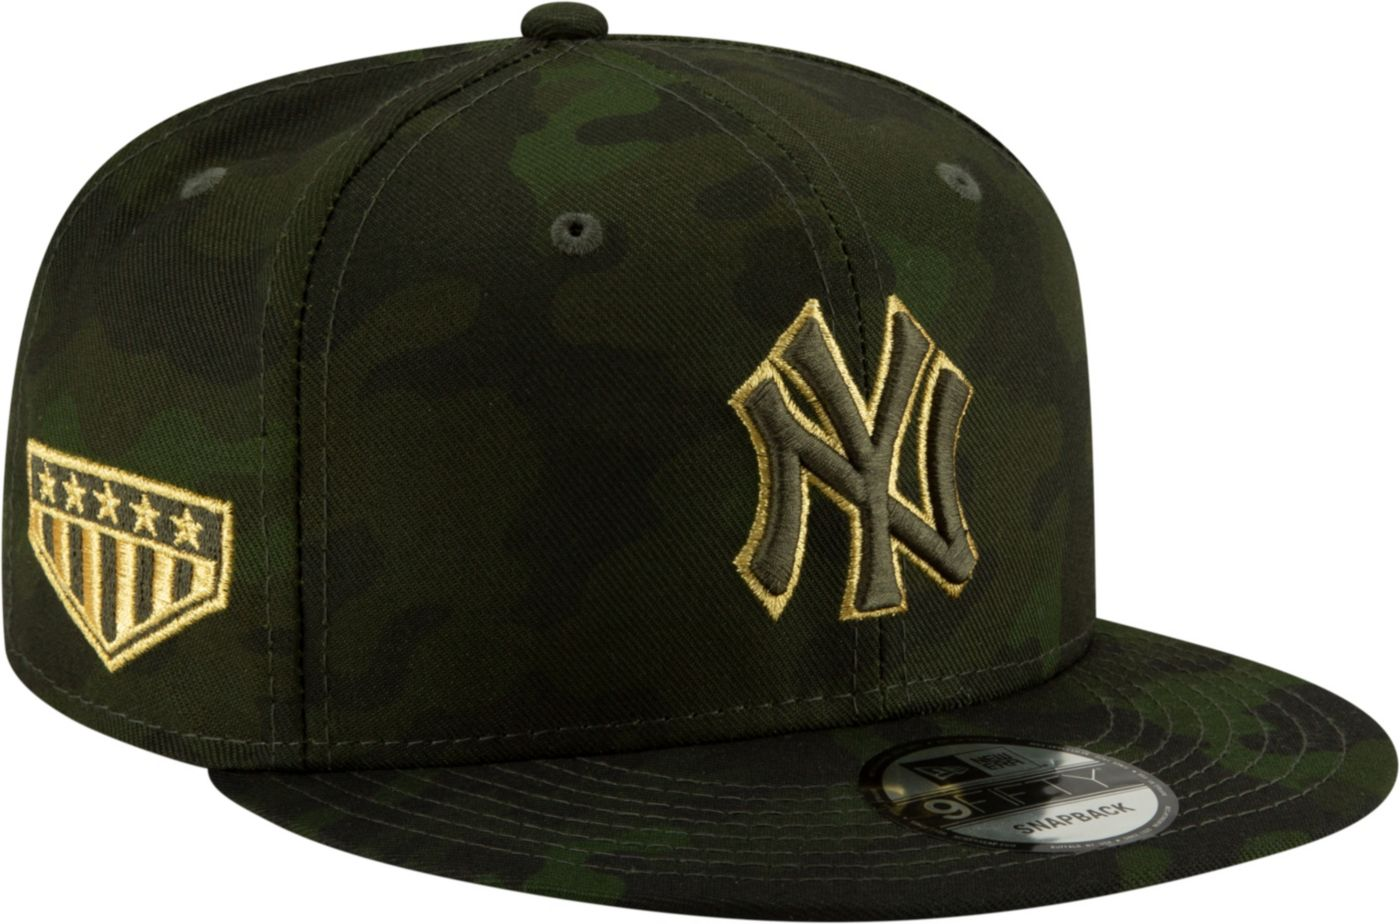 New Era Men's New York Yankees 9Fifty Armed Forces Adjustable Snapback Hat